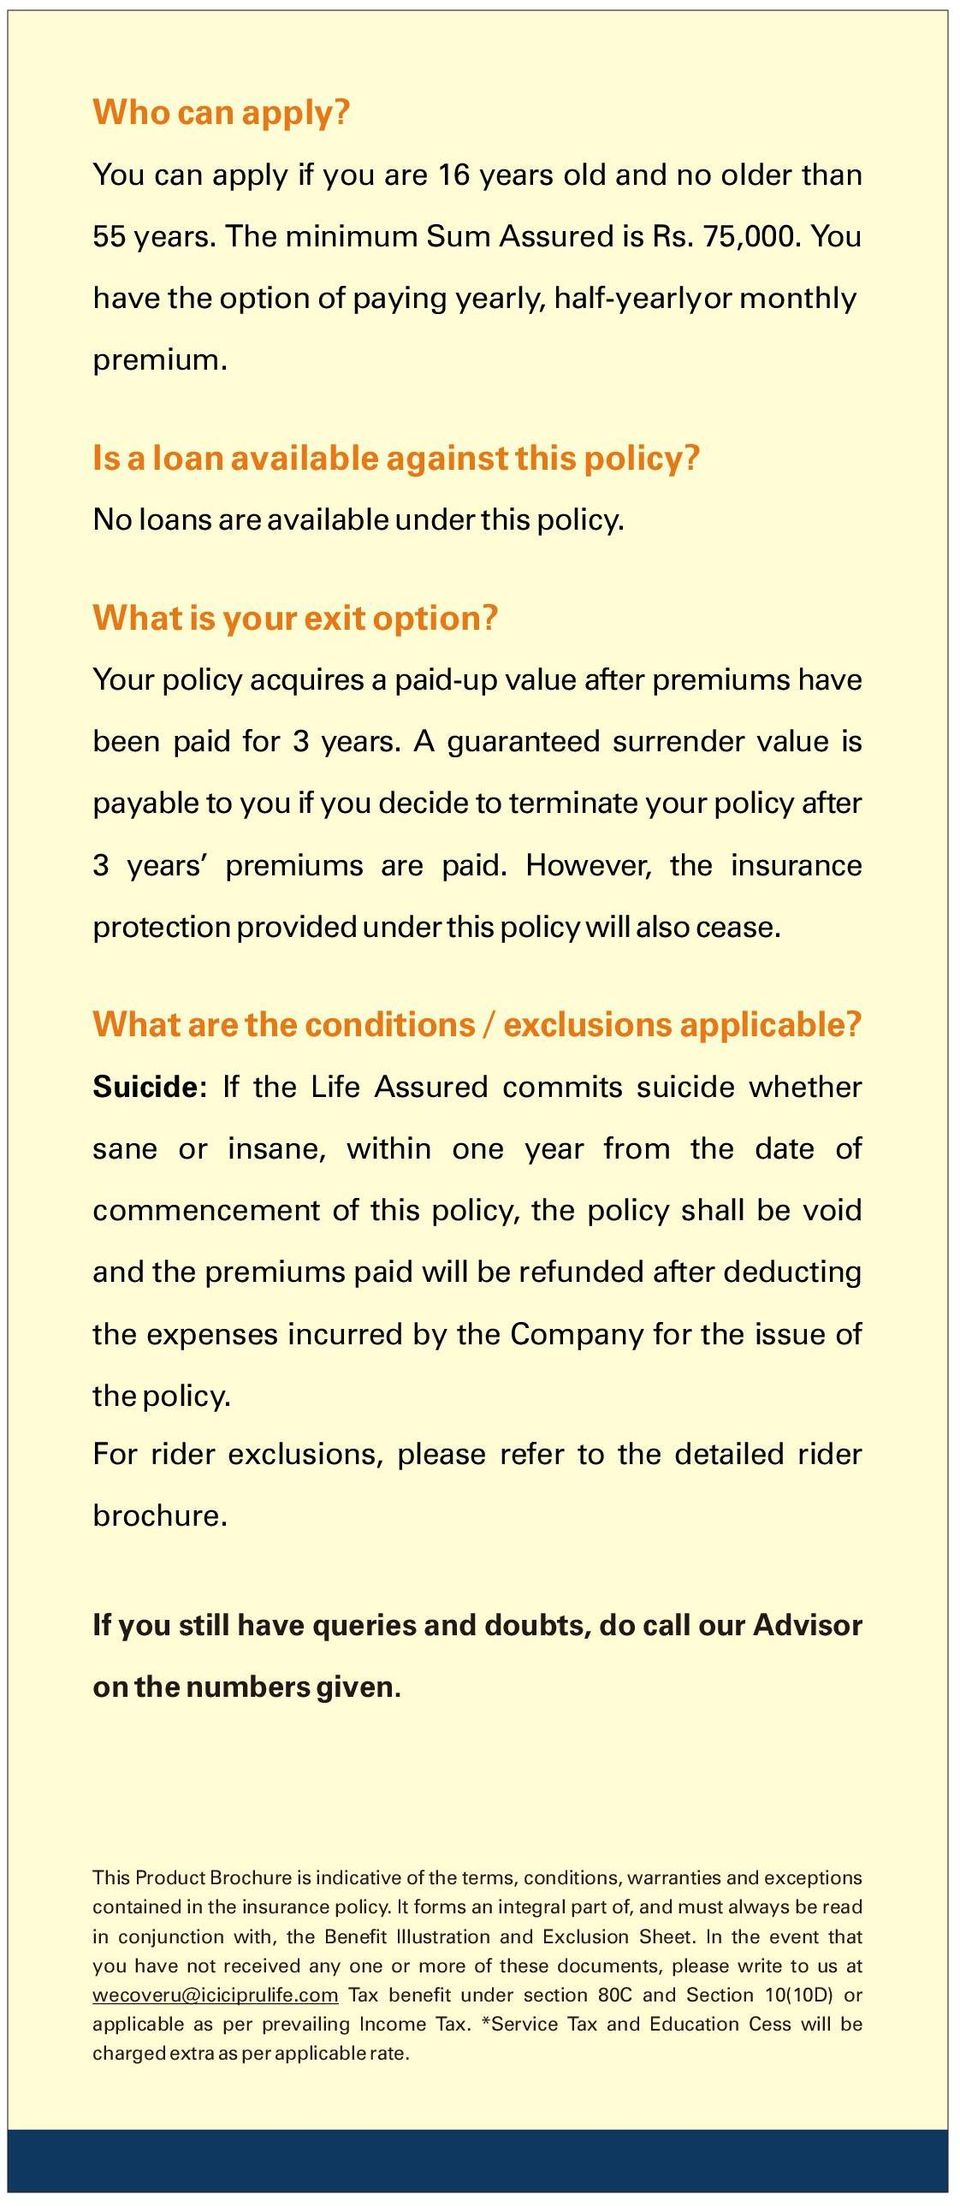 A guaranteed surrender value is payable to you if you decide to terminate your policy after 3 years premiums are paid. However, the insurance protection provided under this policy will also cease.